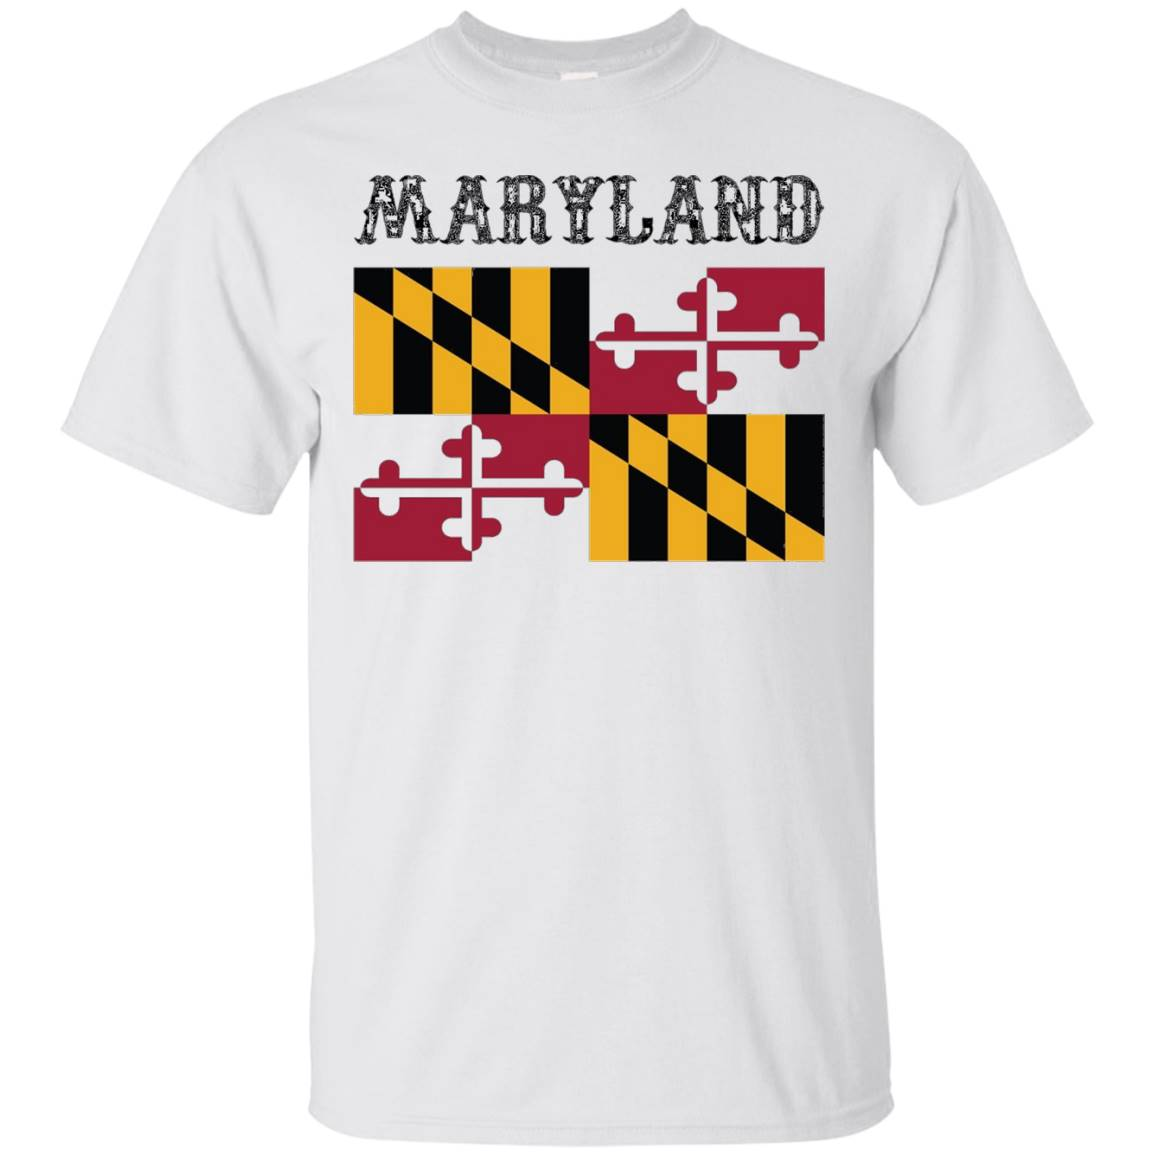 Maryland State Flag T-Shirt – Maryland Pride Tee MD